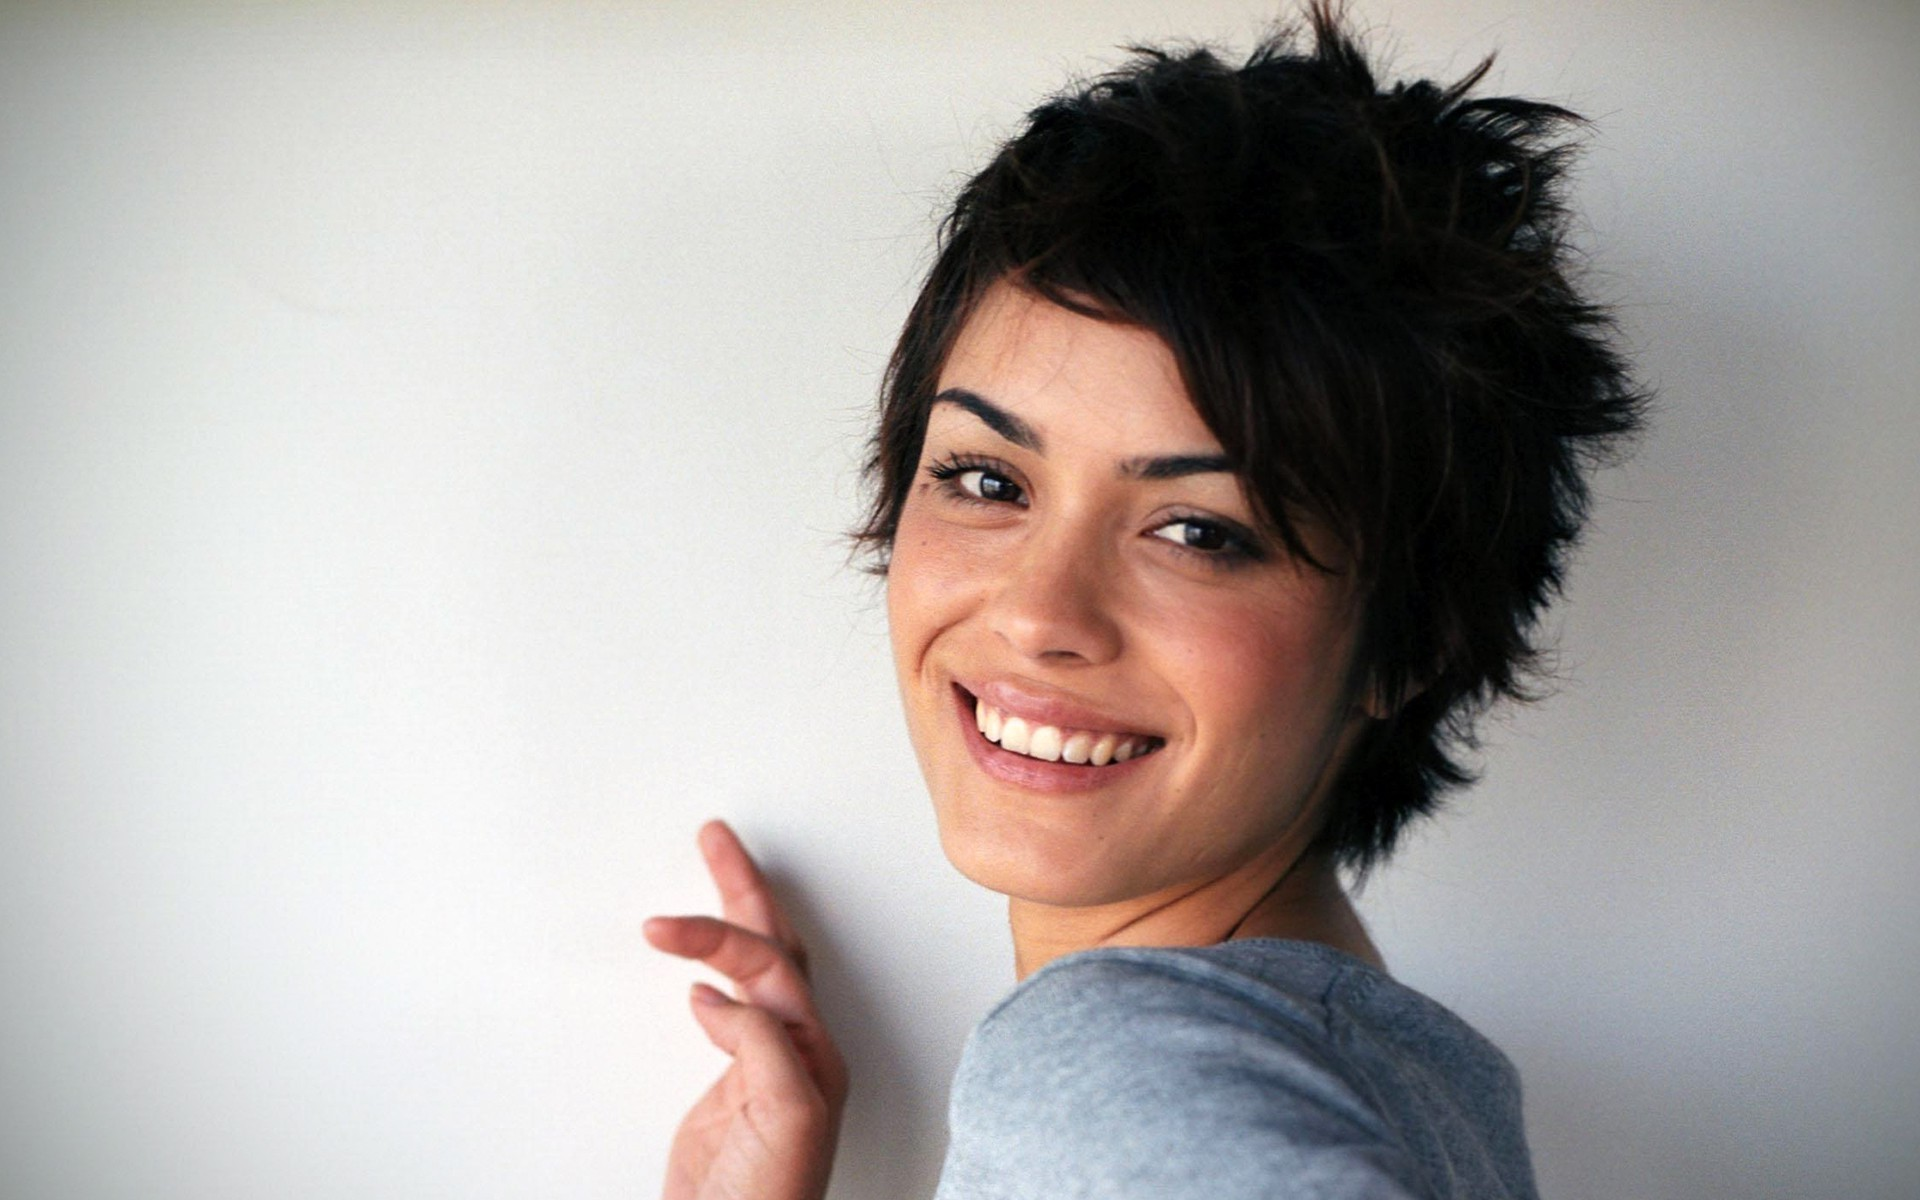 Sinister 2 Set to Begin Production in Chicago As Shannyn Sossamon Cast Sinister 2 Set to